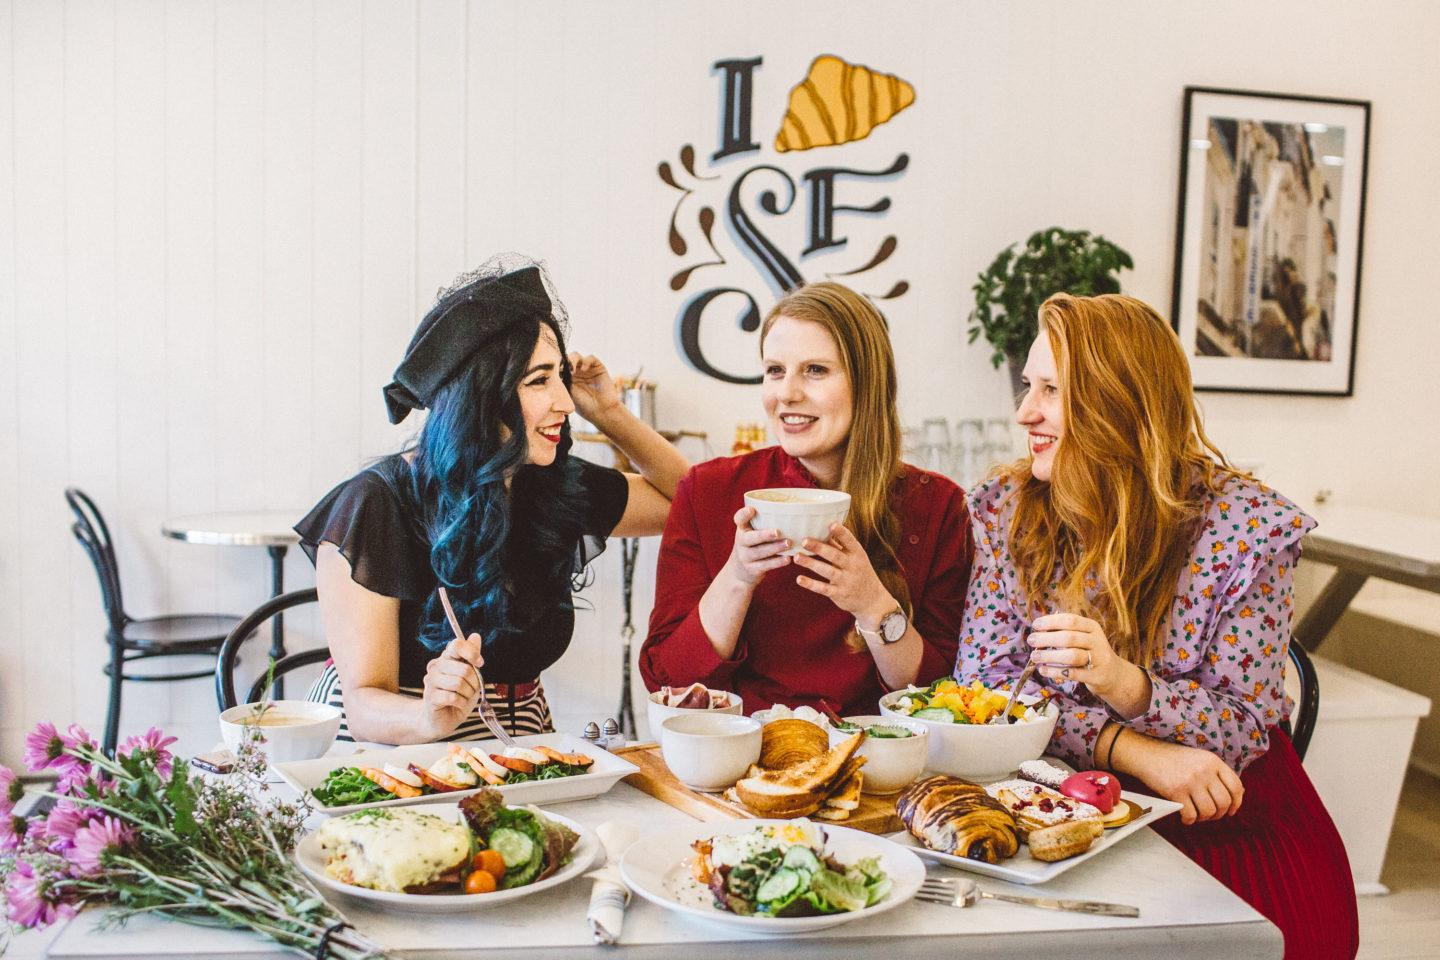 6 Friendship Date Ideas For An Awesome Galentine's Day